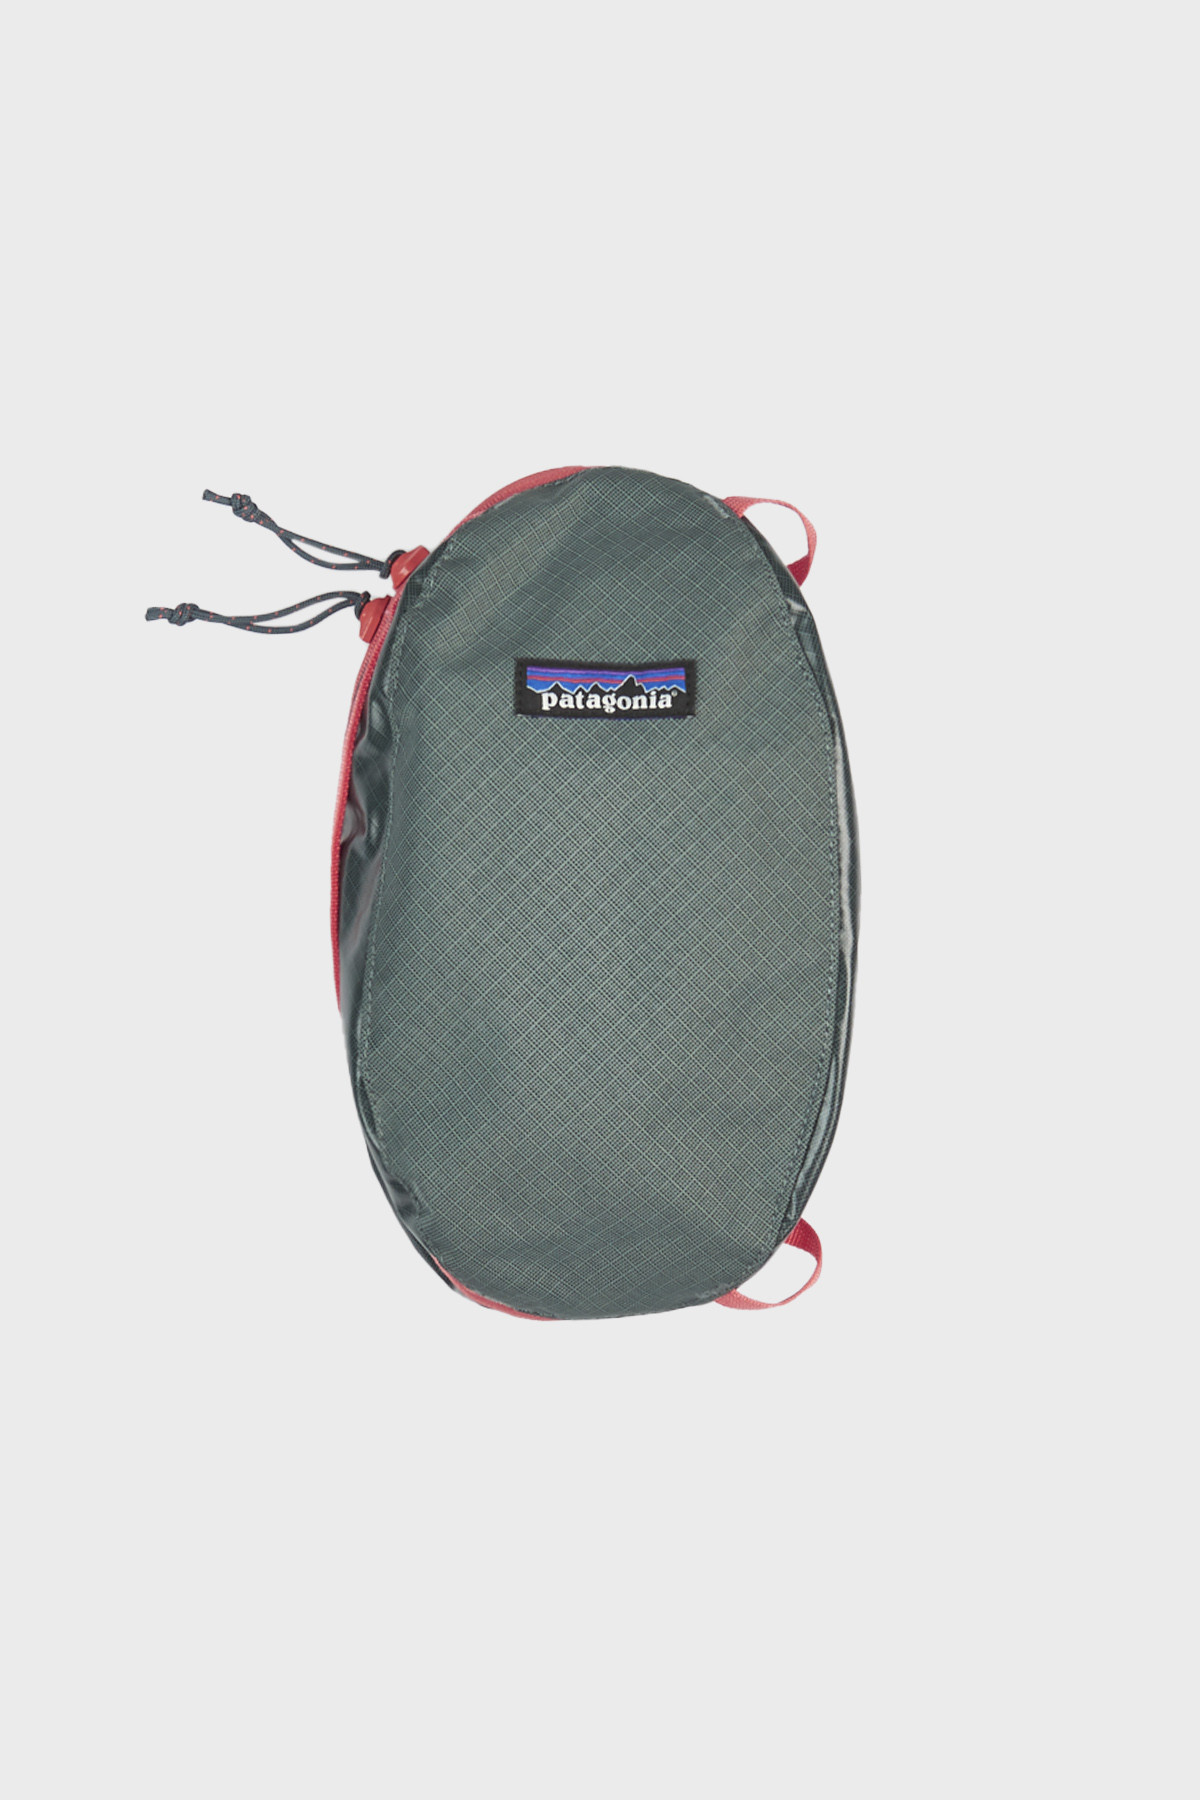 patagonia - black hole cube 2L small - Plume GREY